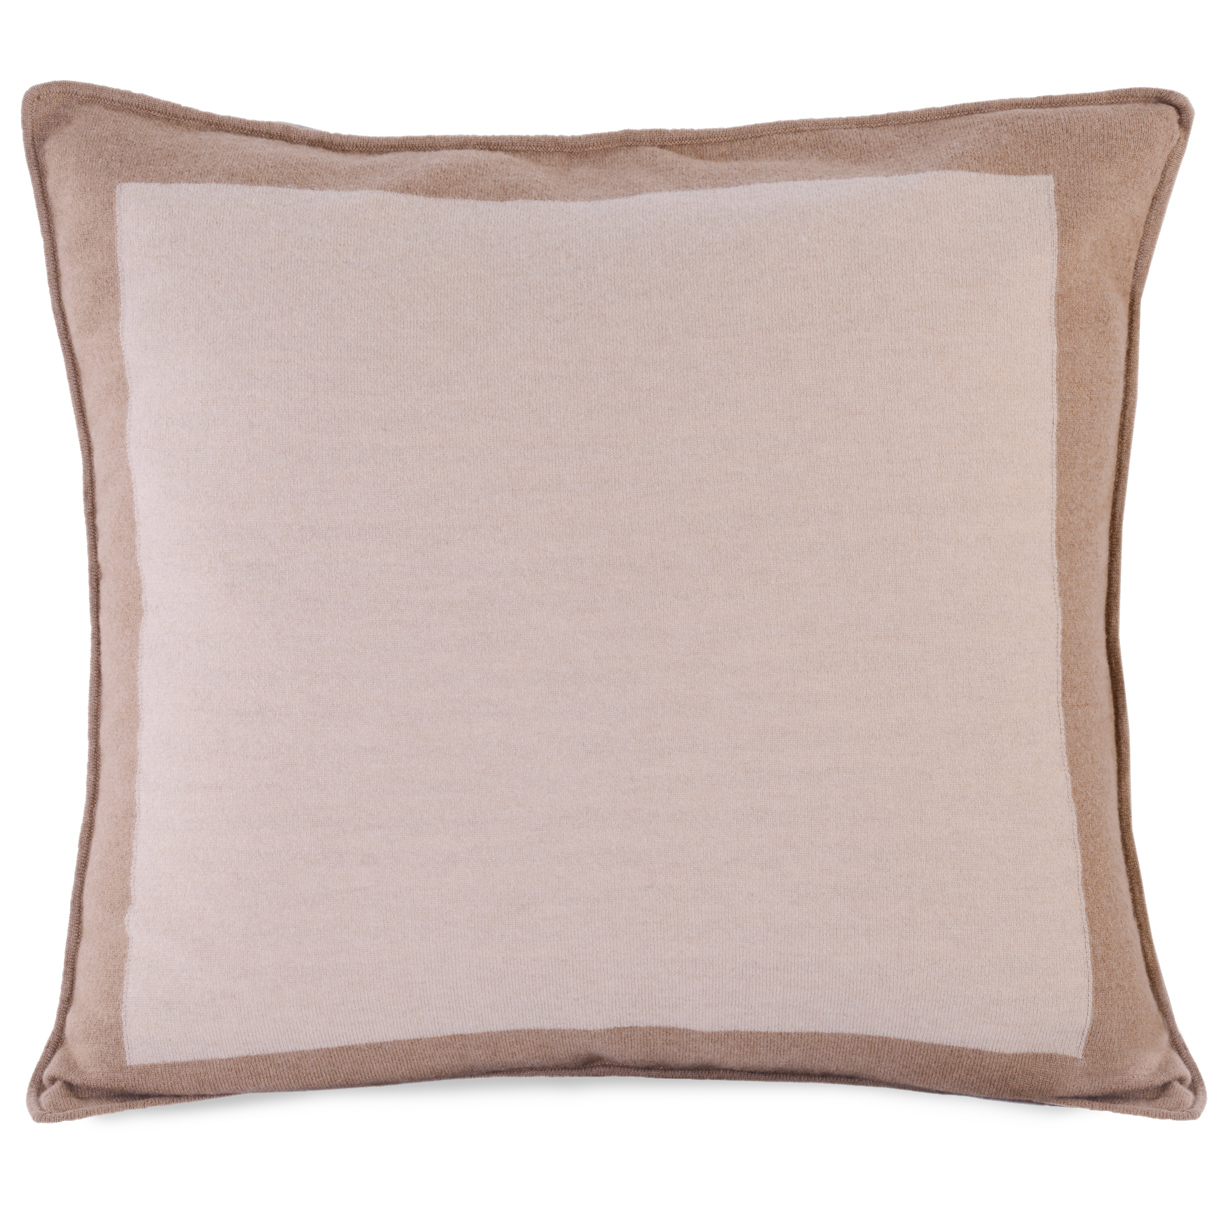 Stephie Classic Beige Bordered Camel Hair Pillow - 22x22